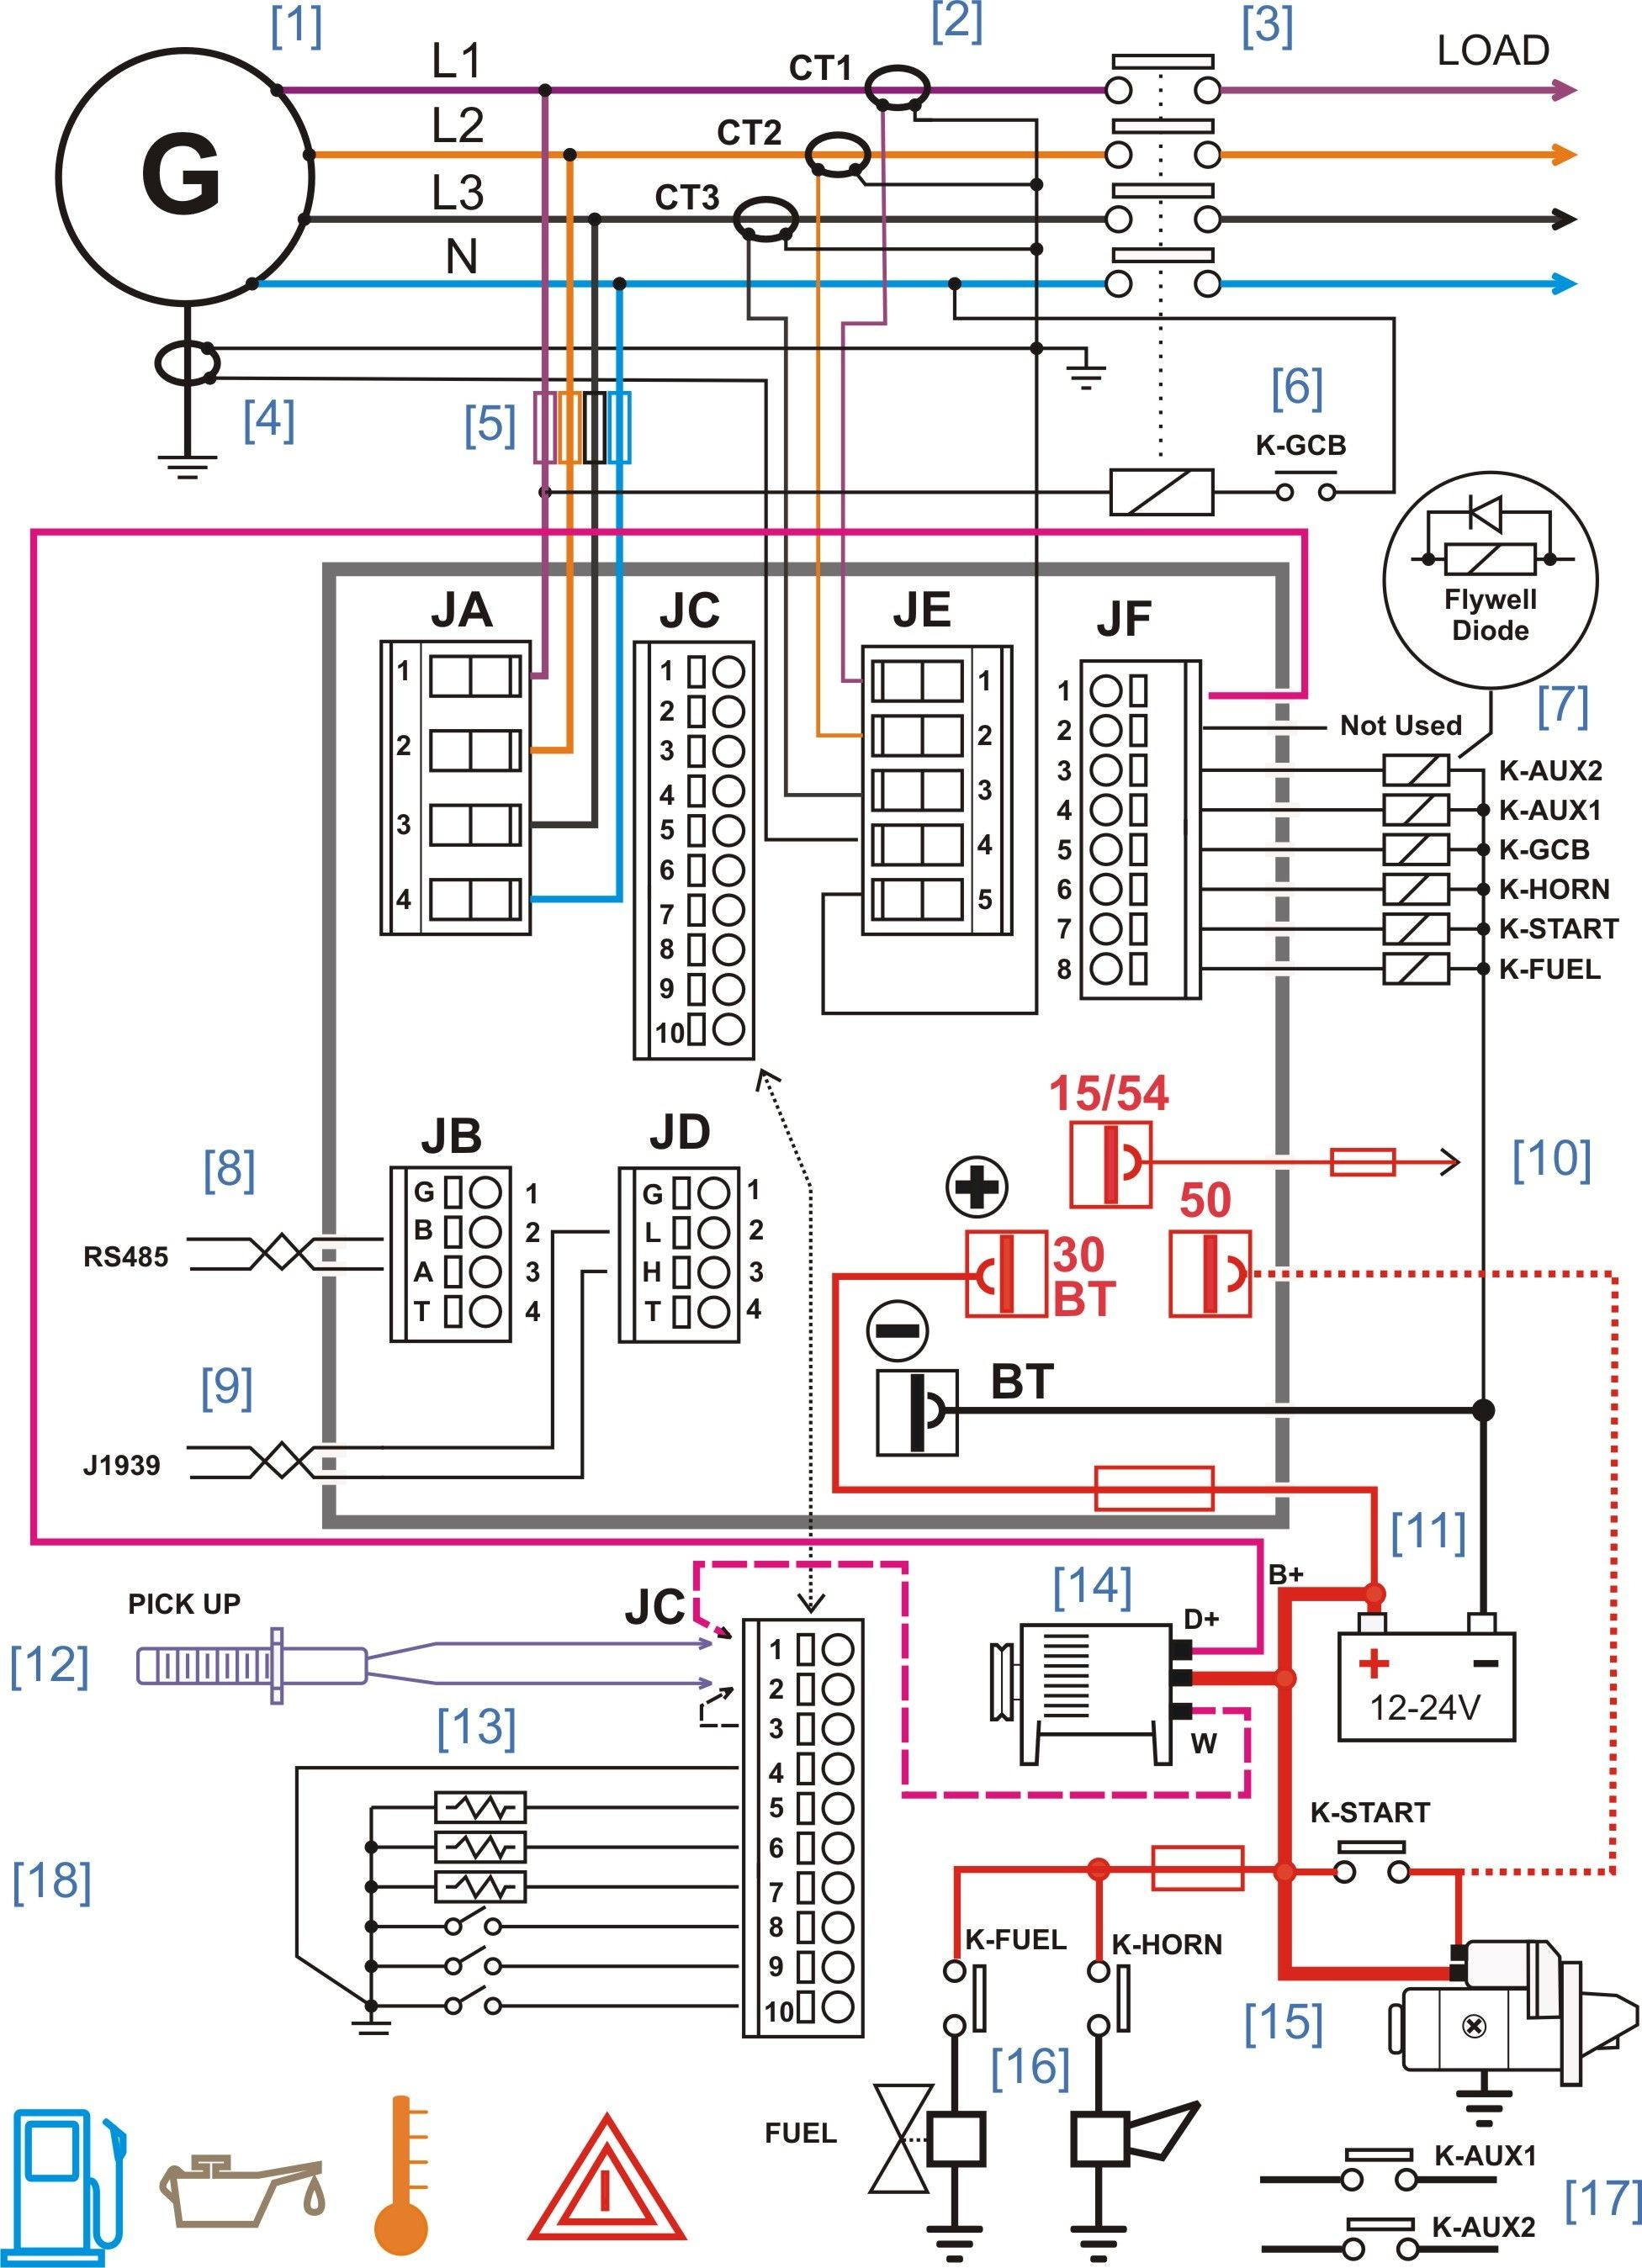 Old House Electrical Wiring Diagrams Wiring Diagram Image